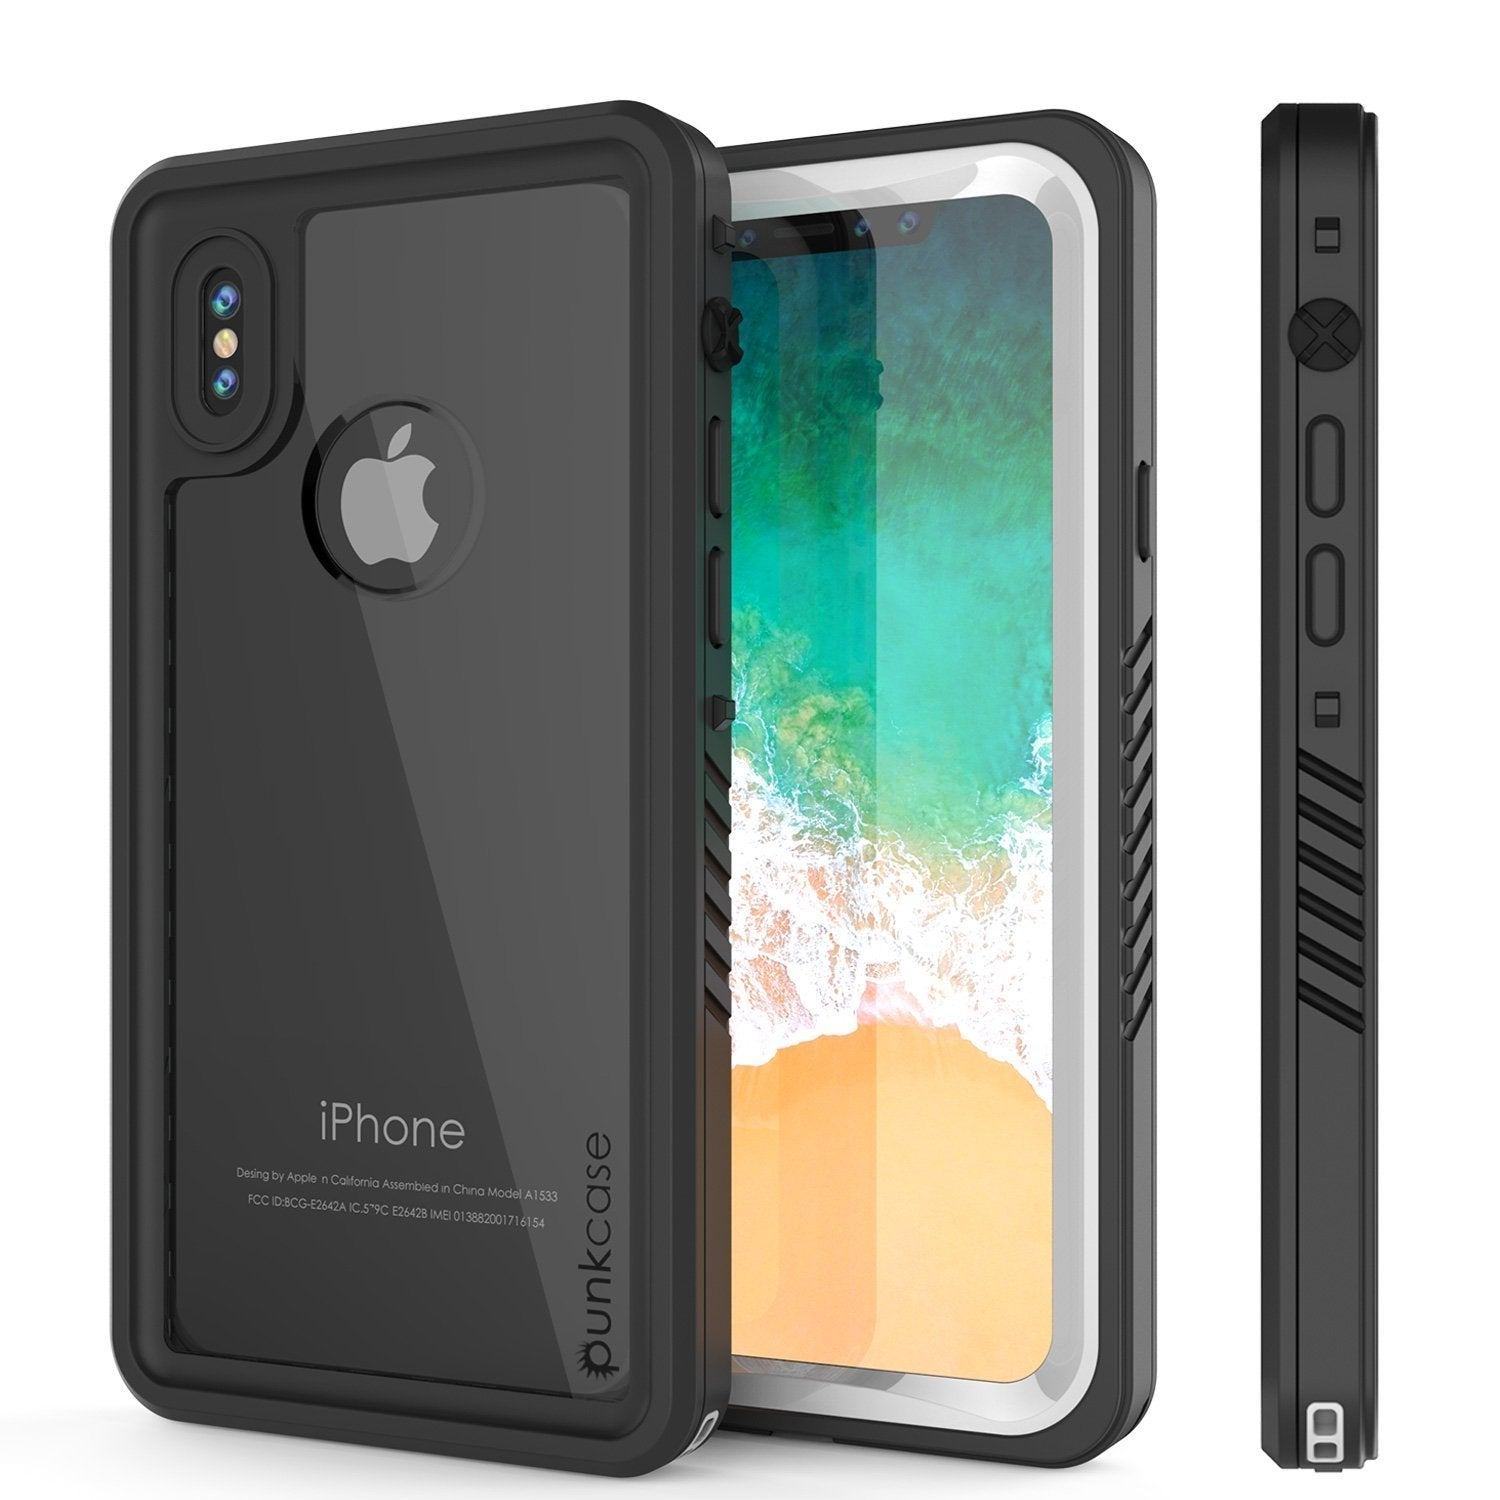 iPhone XS Max Waterproof Case, Punkcase [Extreme Series] Armor Cover W/ Built In Screen Protector [White]